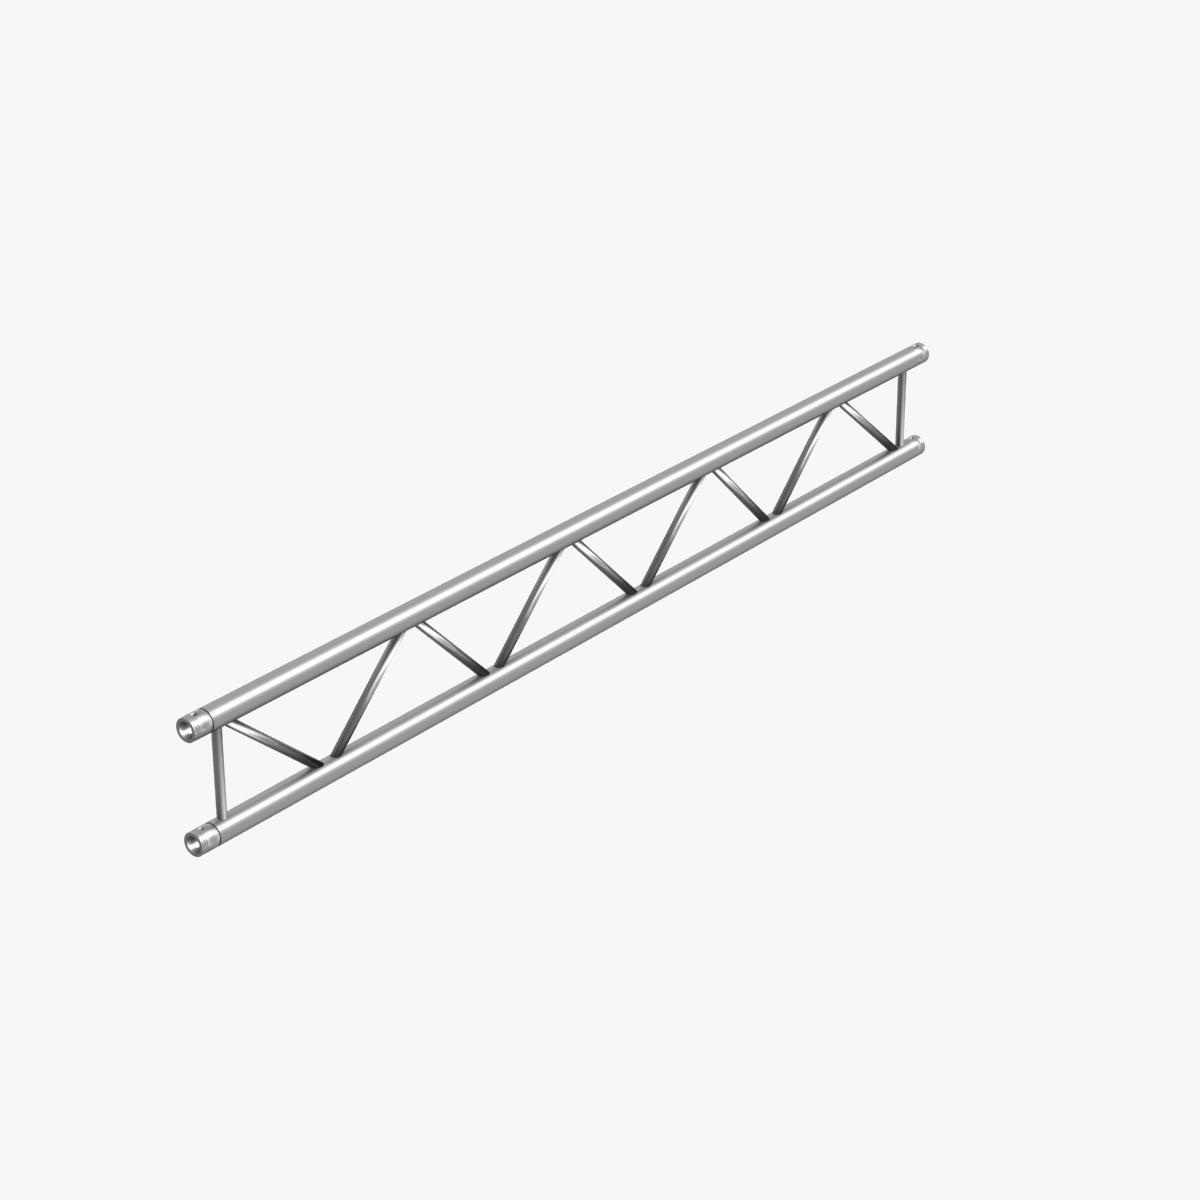 beam trusses (collection 24 modular pieces) 3d model 3ds max dxf fbx bmp blend c4d dae other obj 268723